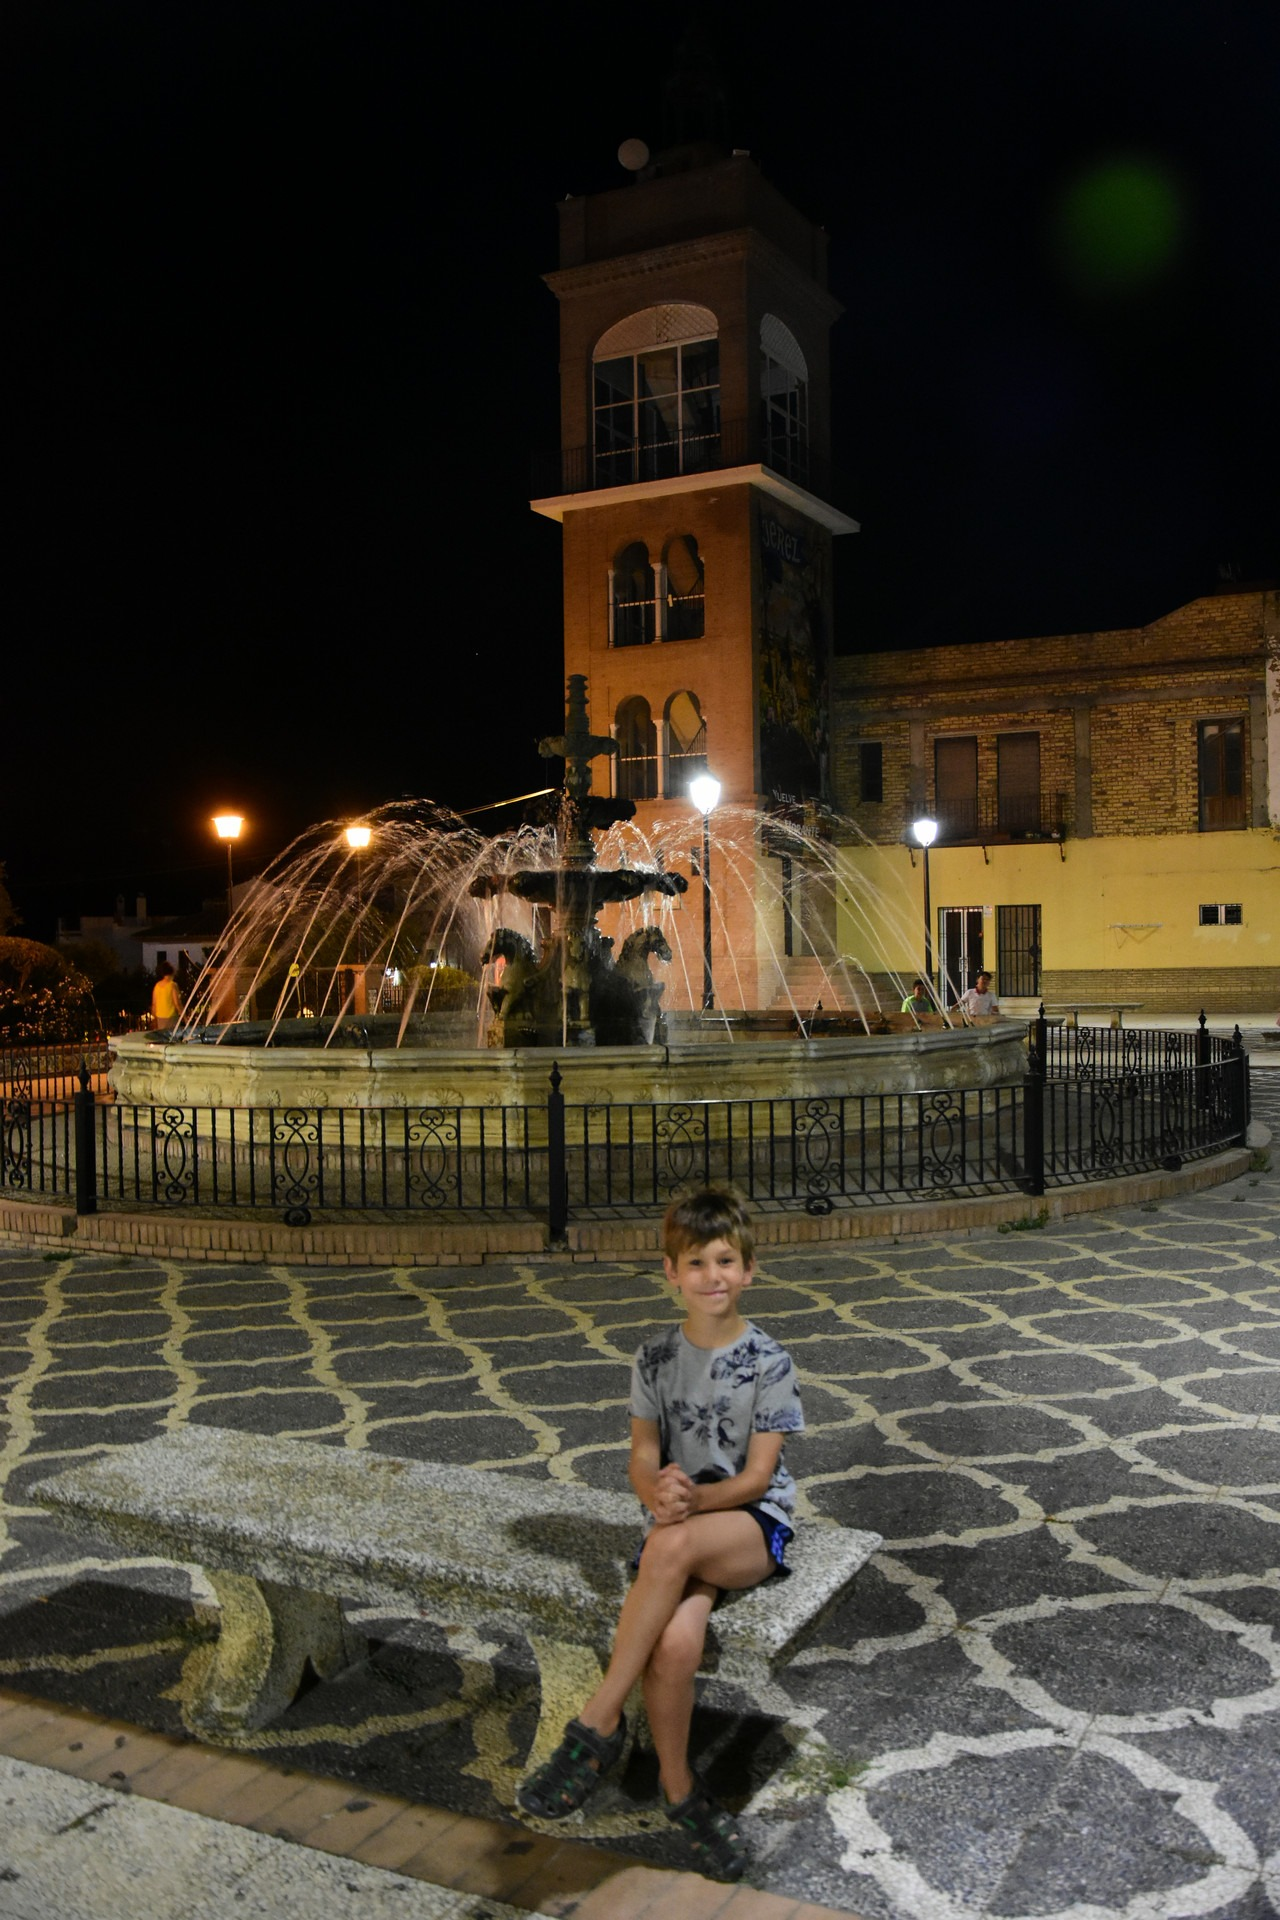 Spain – little rest in La Puebla del Rio